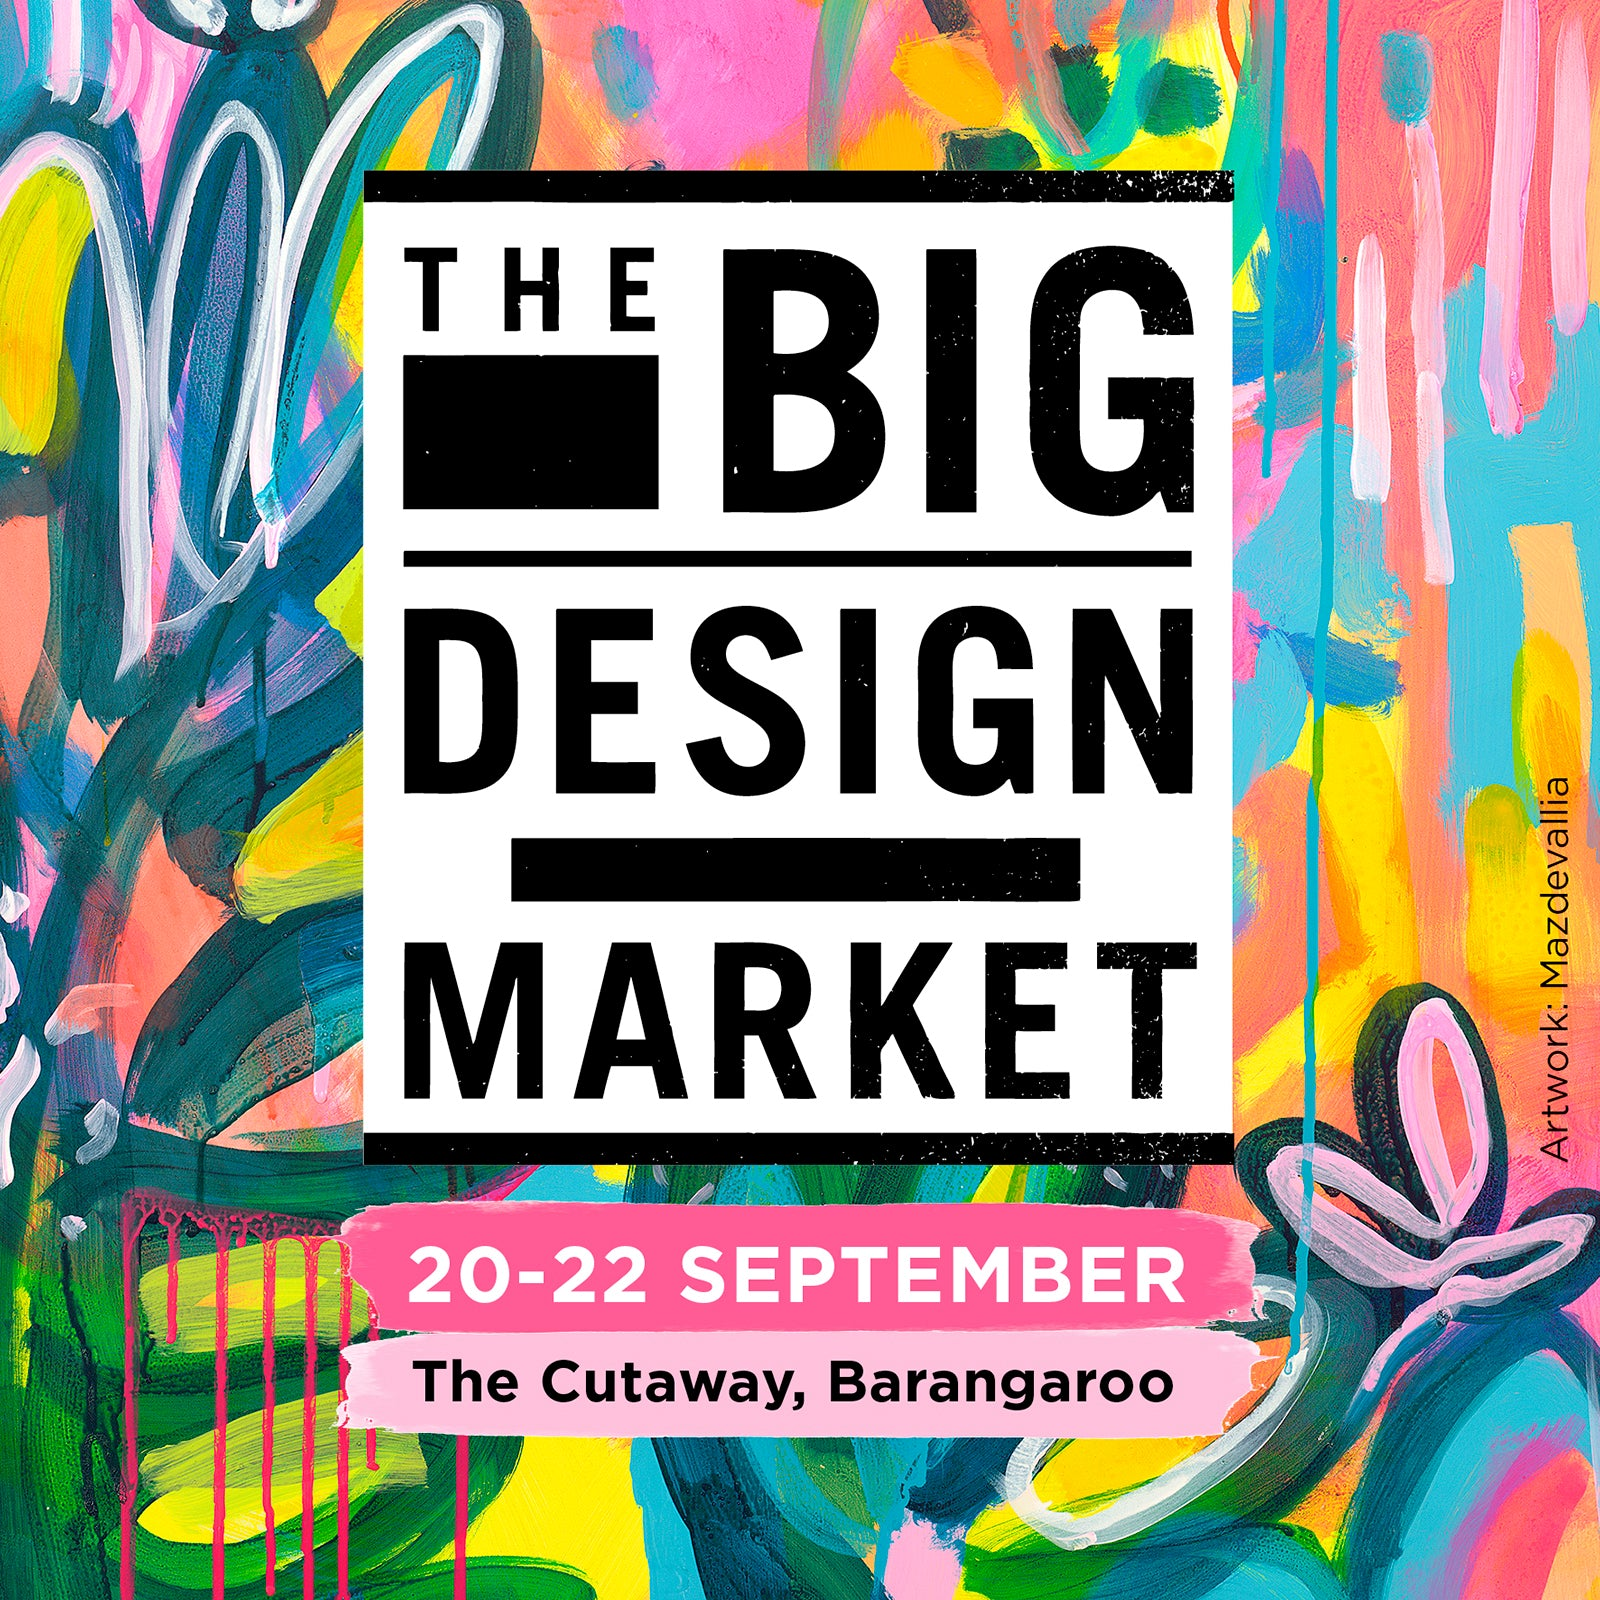 Big Design Market Sydney to feature Funky Monkey Bars